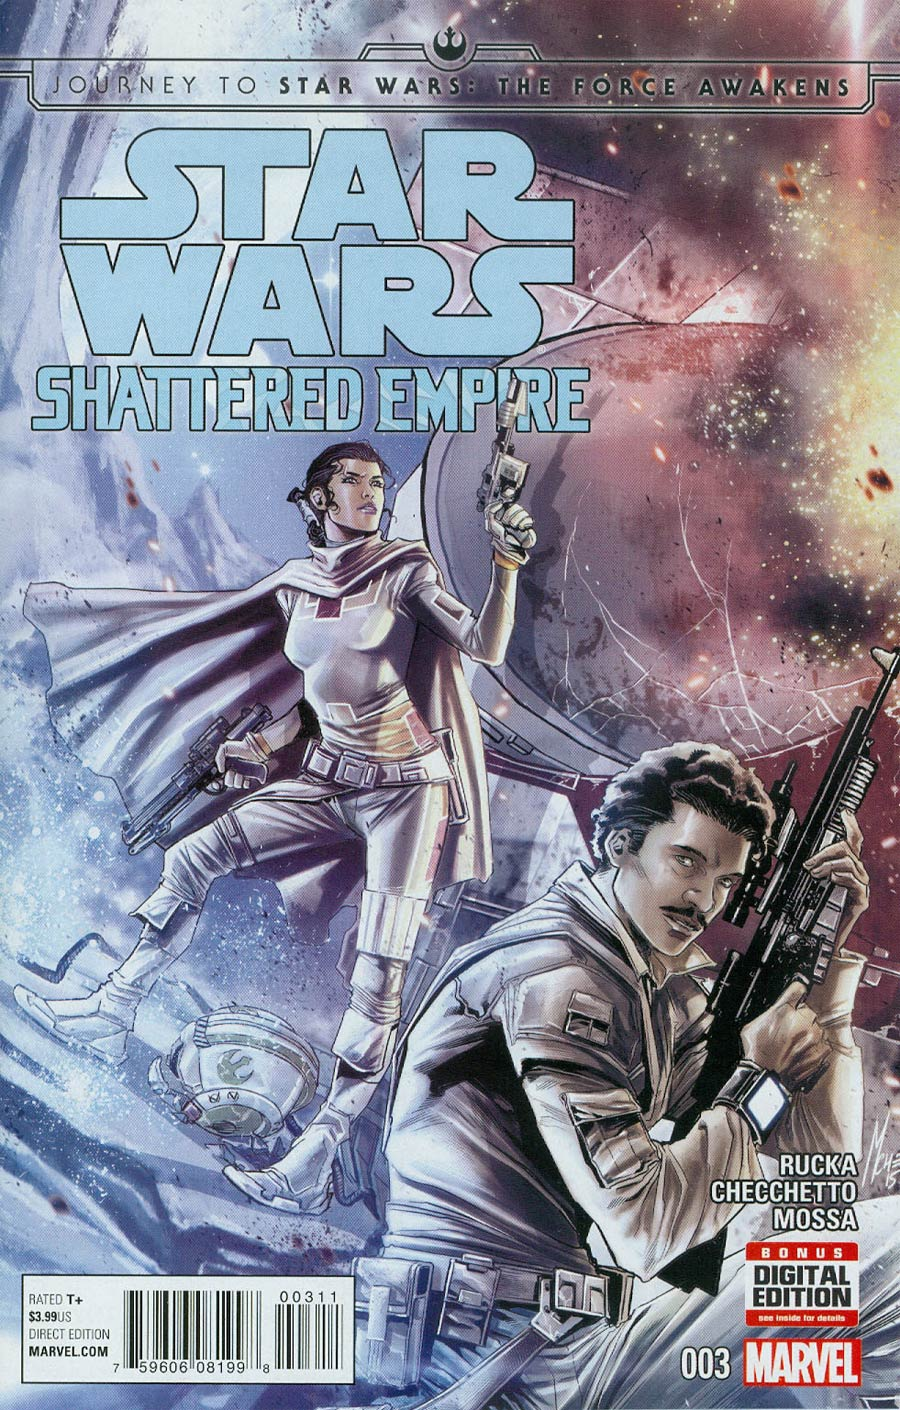 Journey To Star Wars Force Awakens Shattered Empire #3 Cover A Regular Marco Checchetto Cover